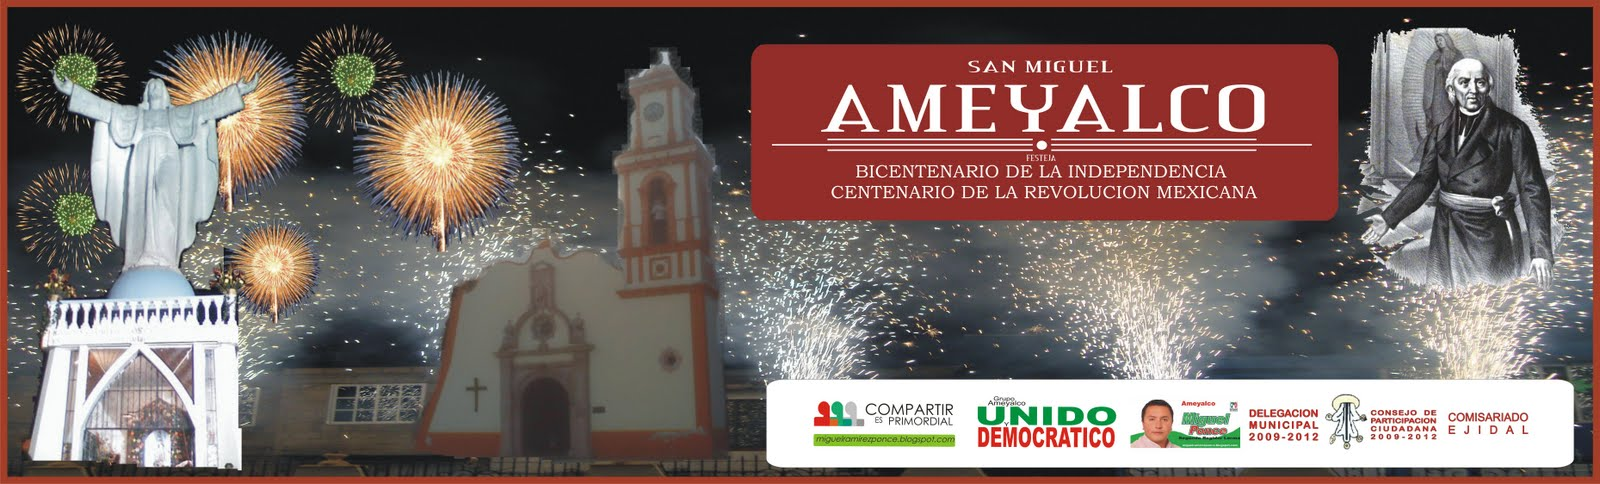 SAN MIGUEL AMEYALCO